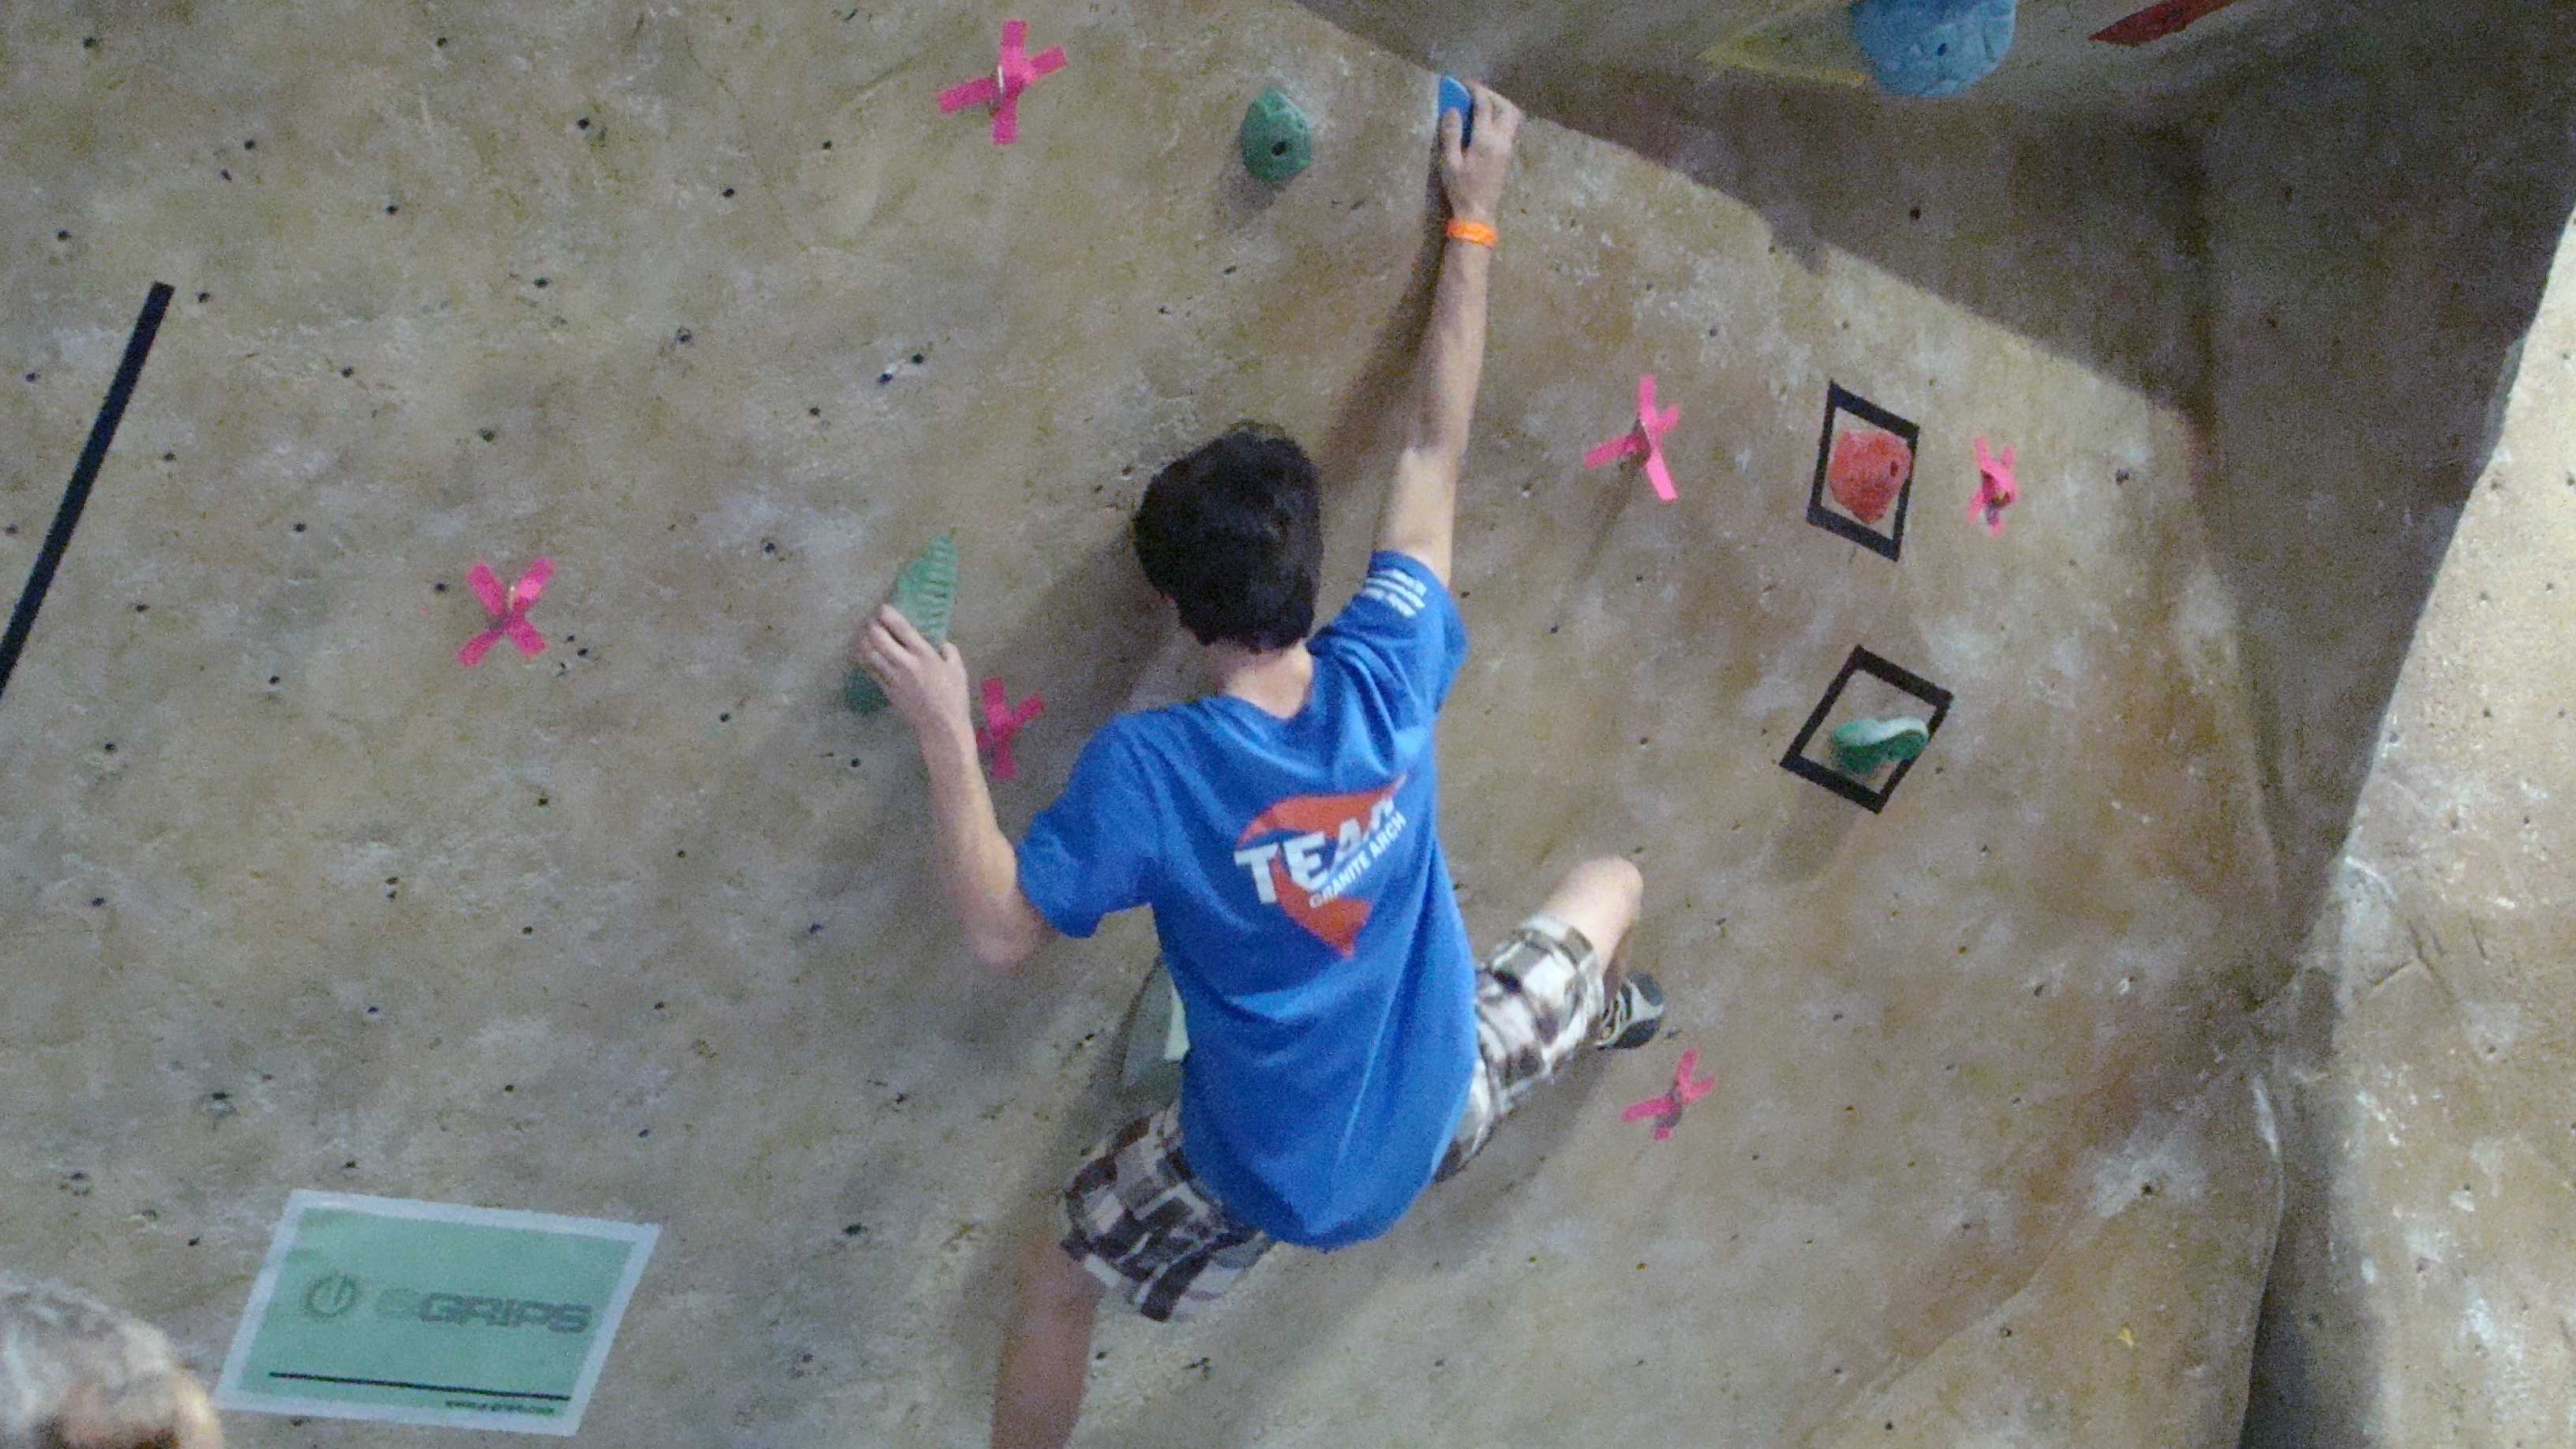 Joseph Diaz climbing his way to second place at the American Bouldering Series Divisional in Oregon.